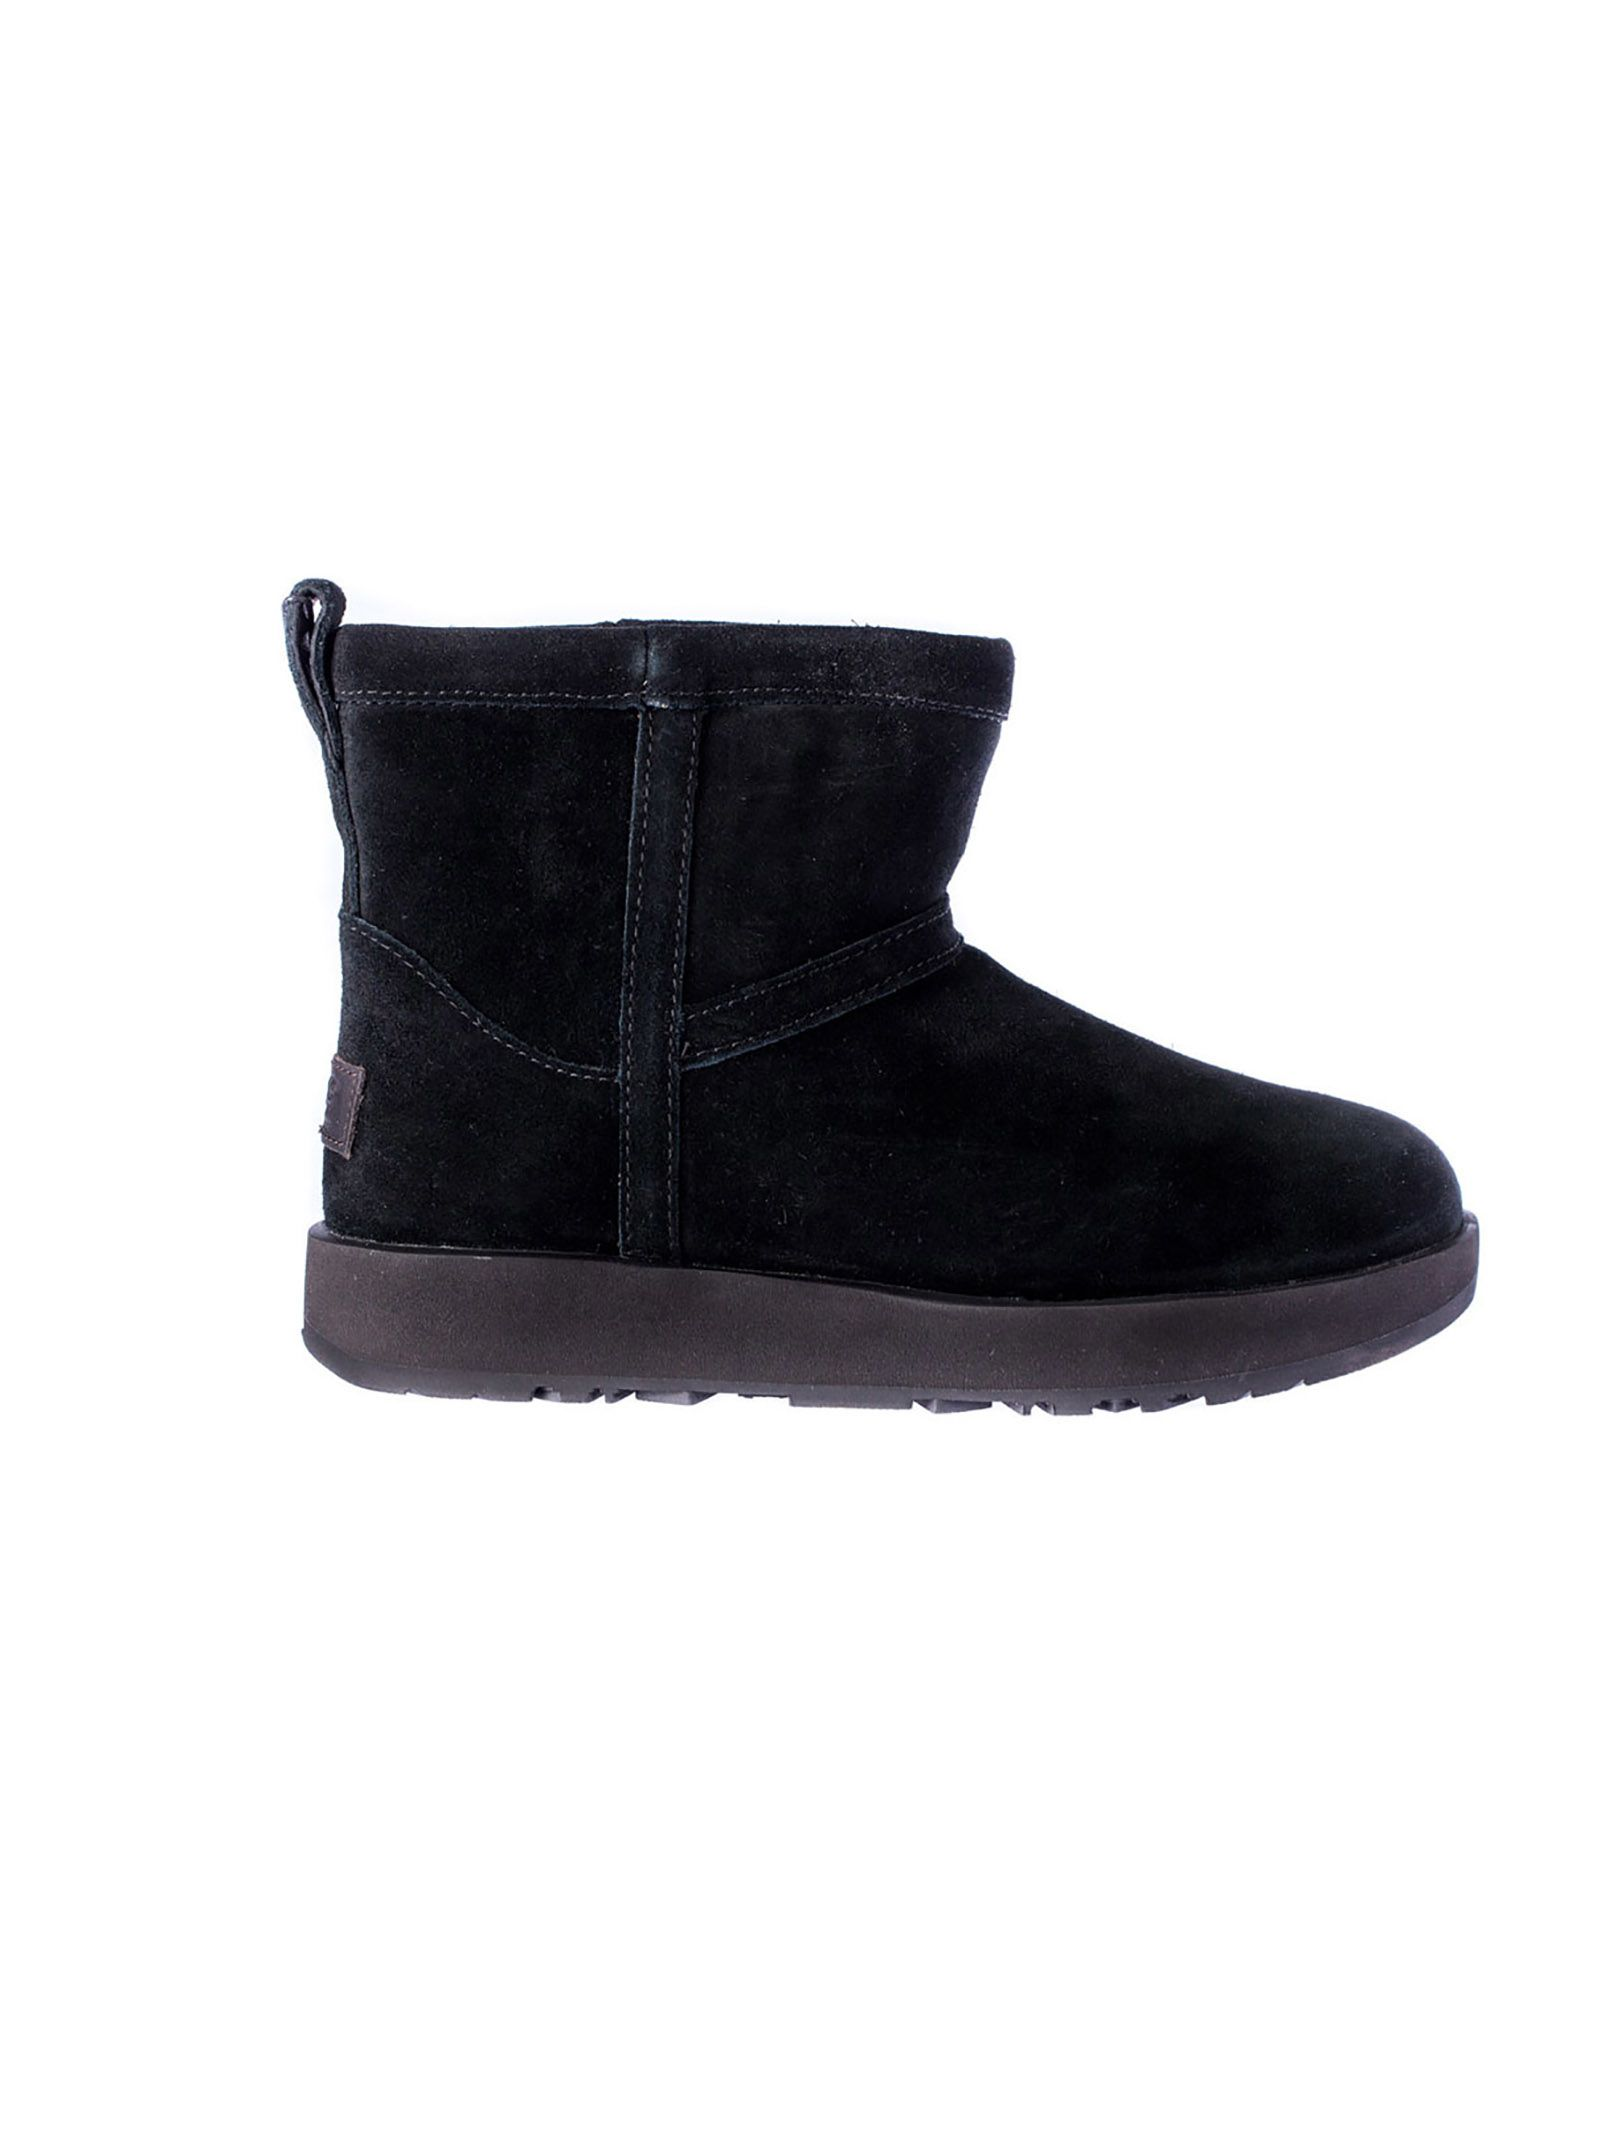 e3441384f7a where can i buy ugg classic mini waterproof bootie boots 32d62 01d9d